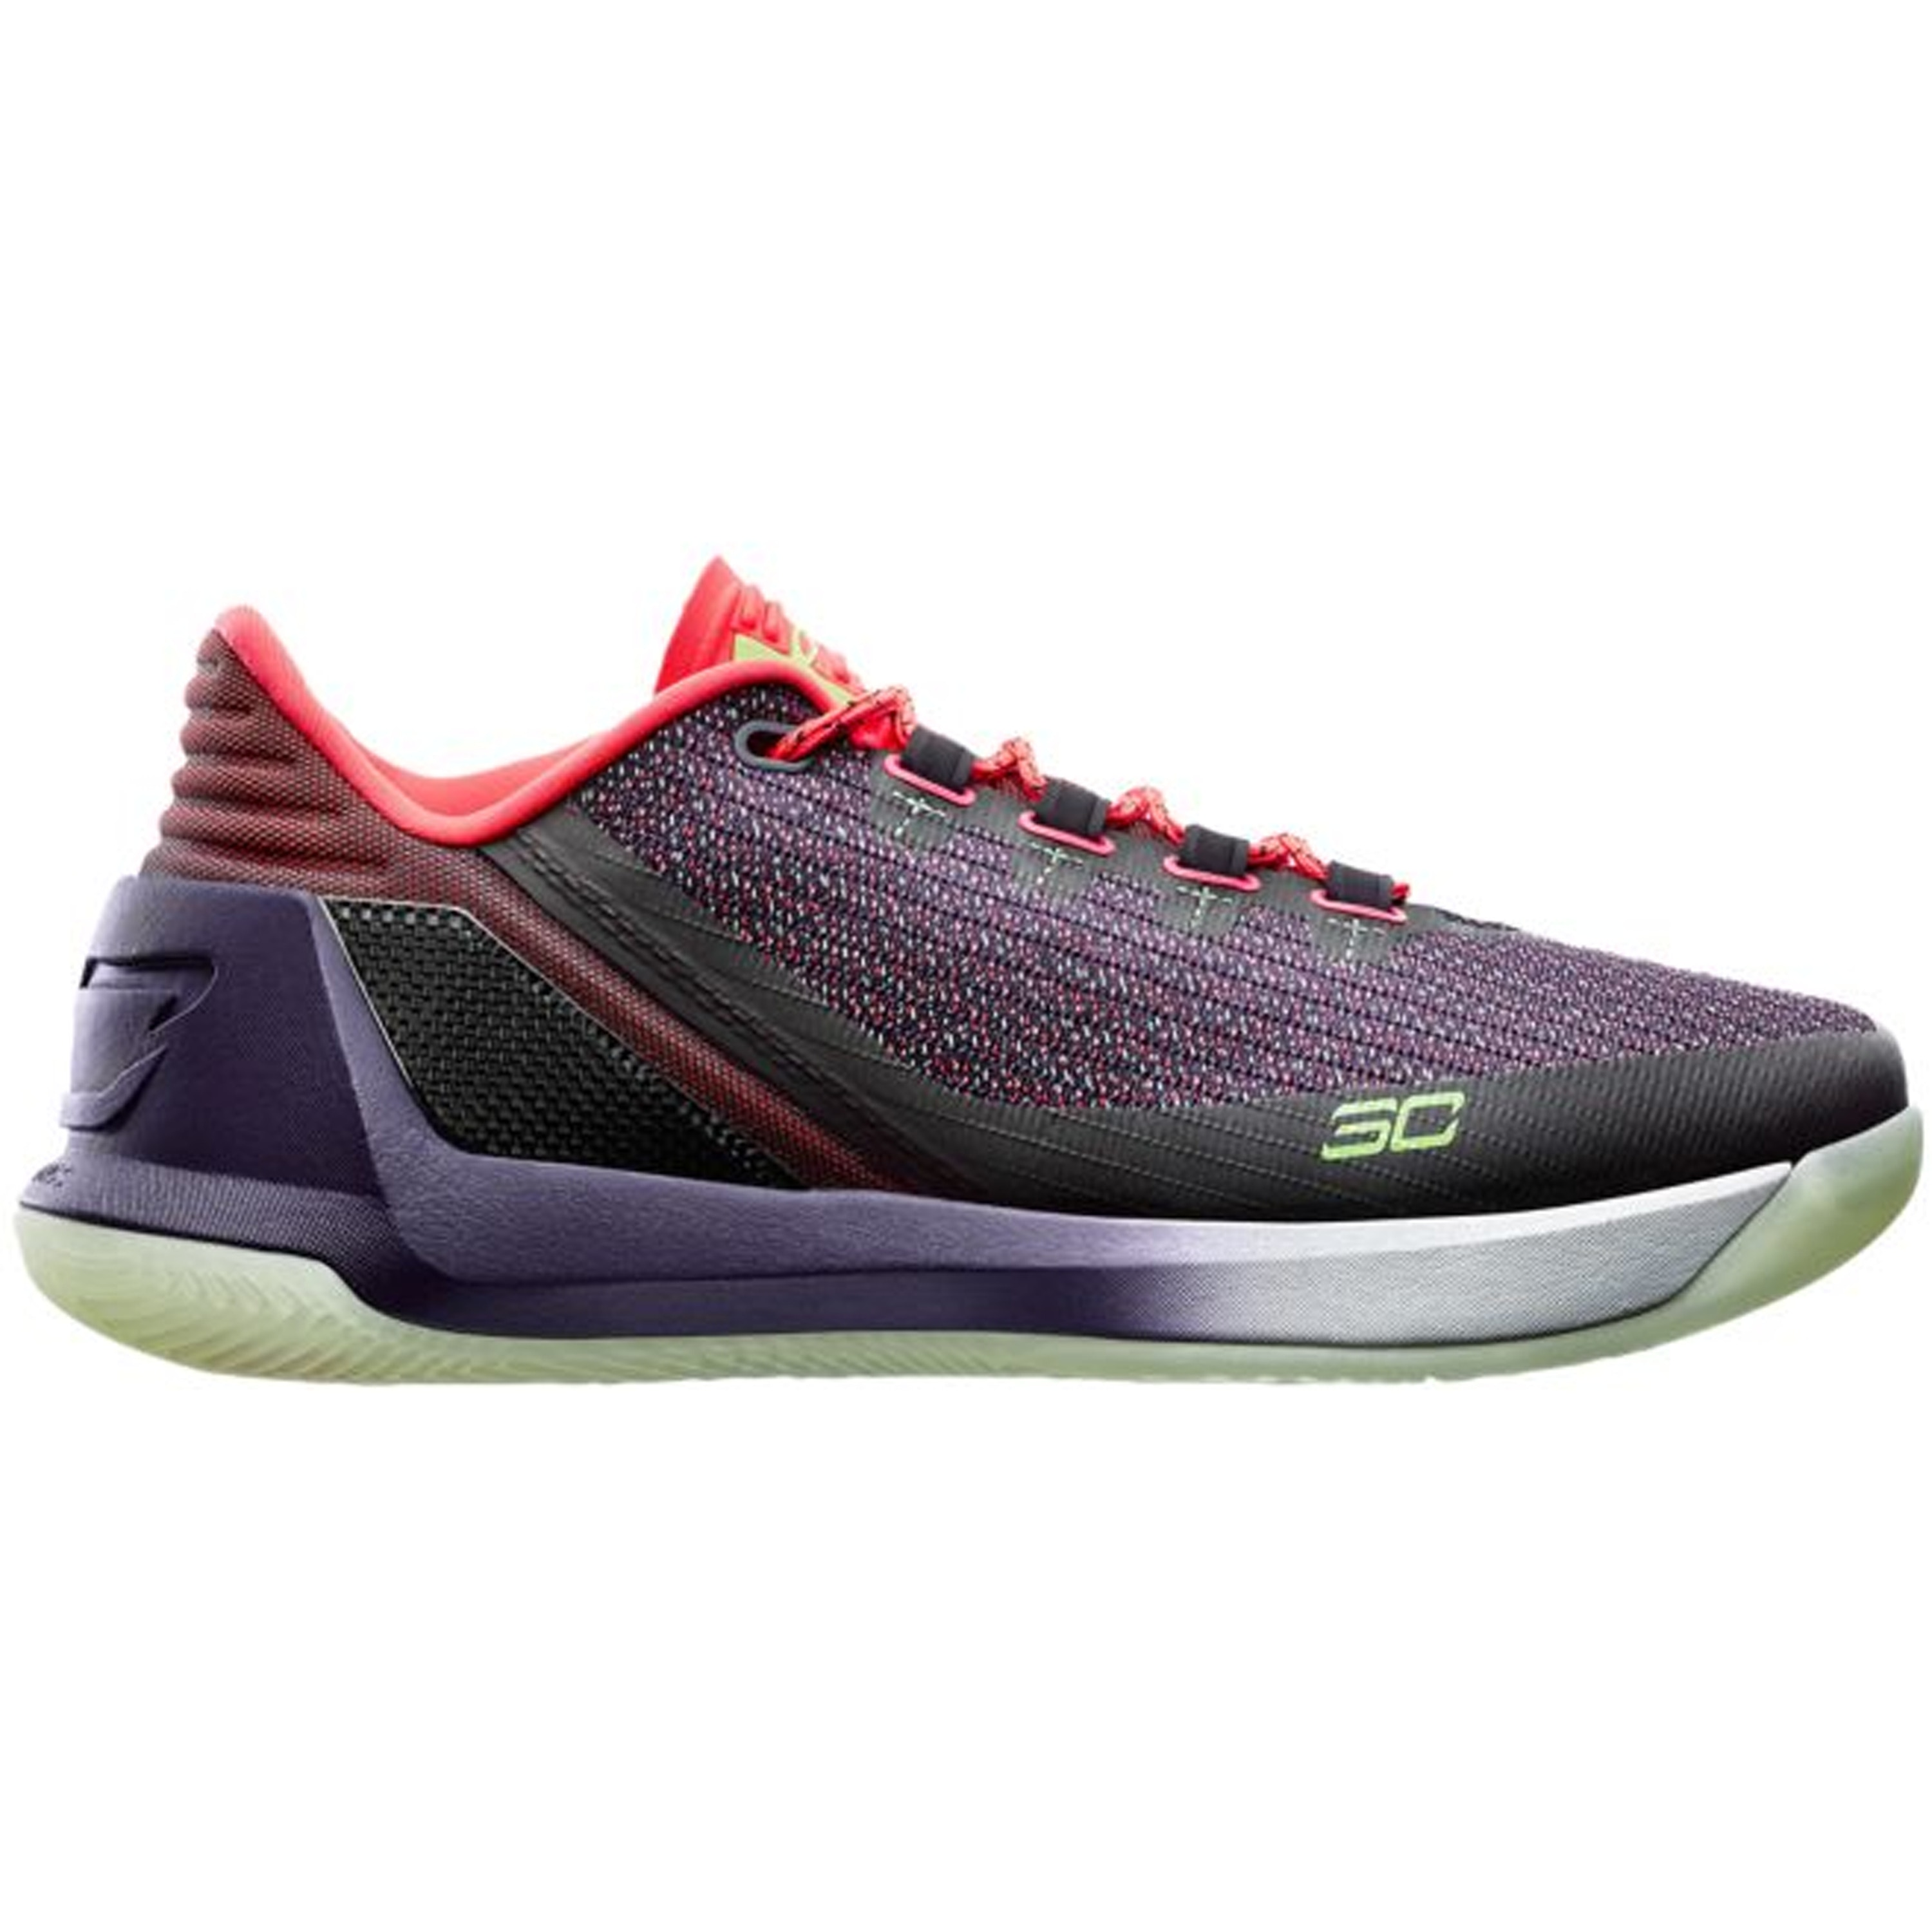 Under Armour UA Curry 3 Full Circle (1286376-101)